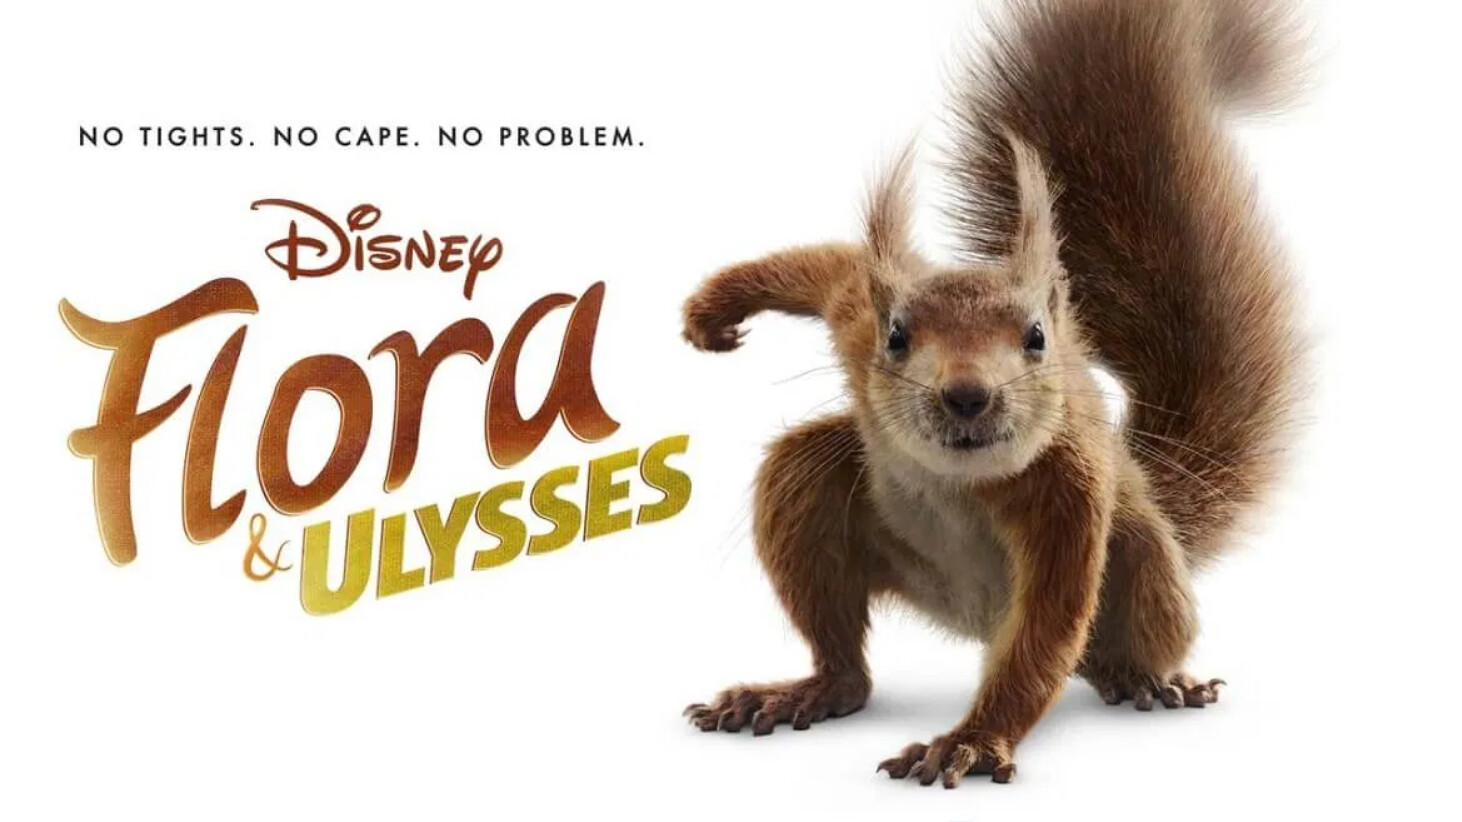 Disney's new feature film unites a 10-year-old girl and a magical squirrel for nutty adventures.